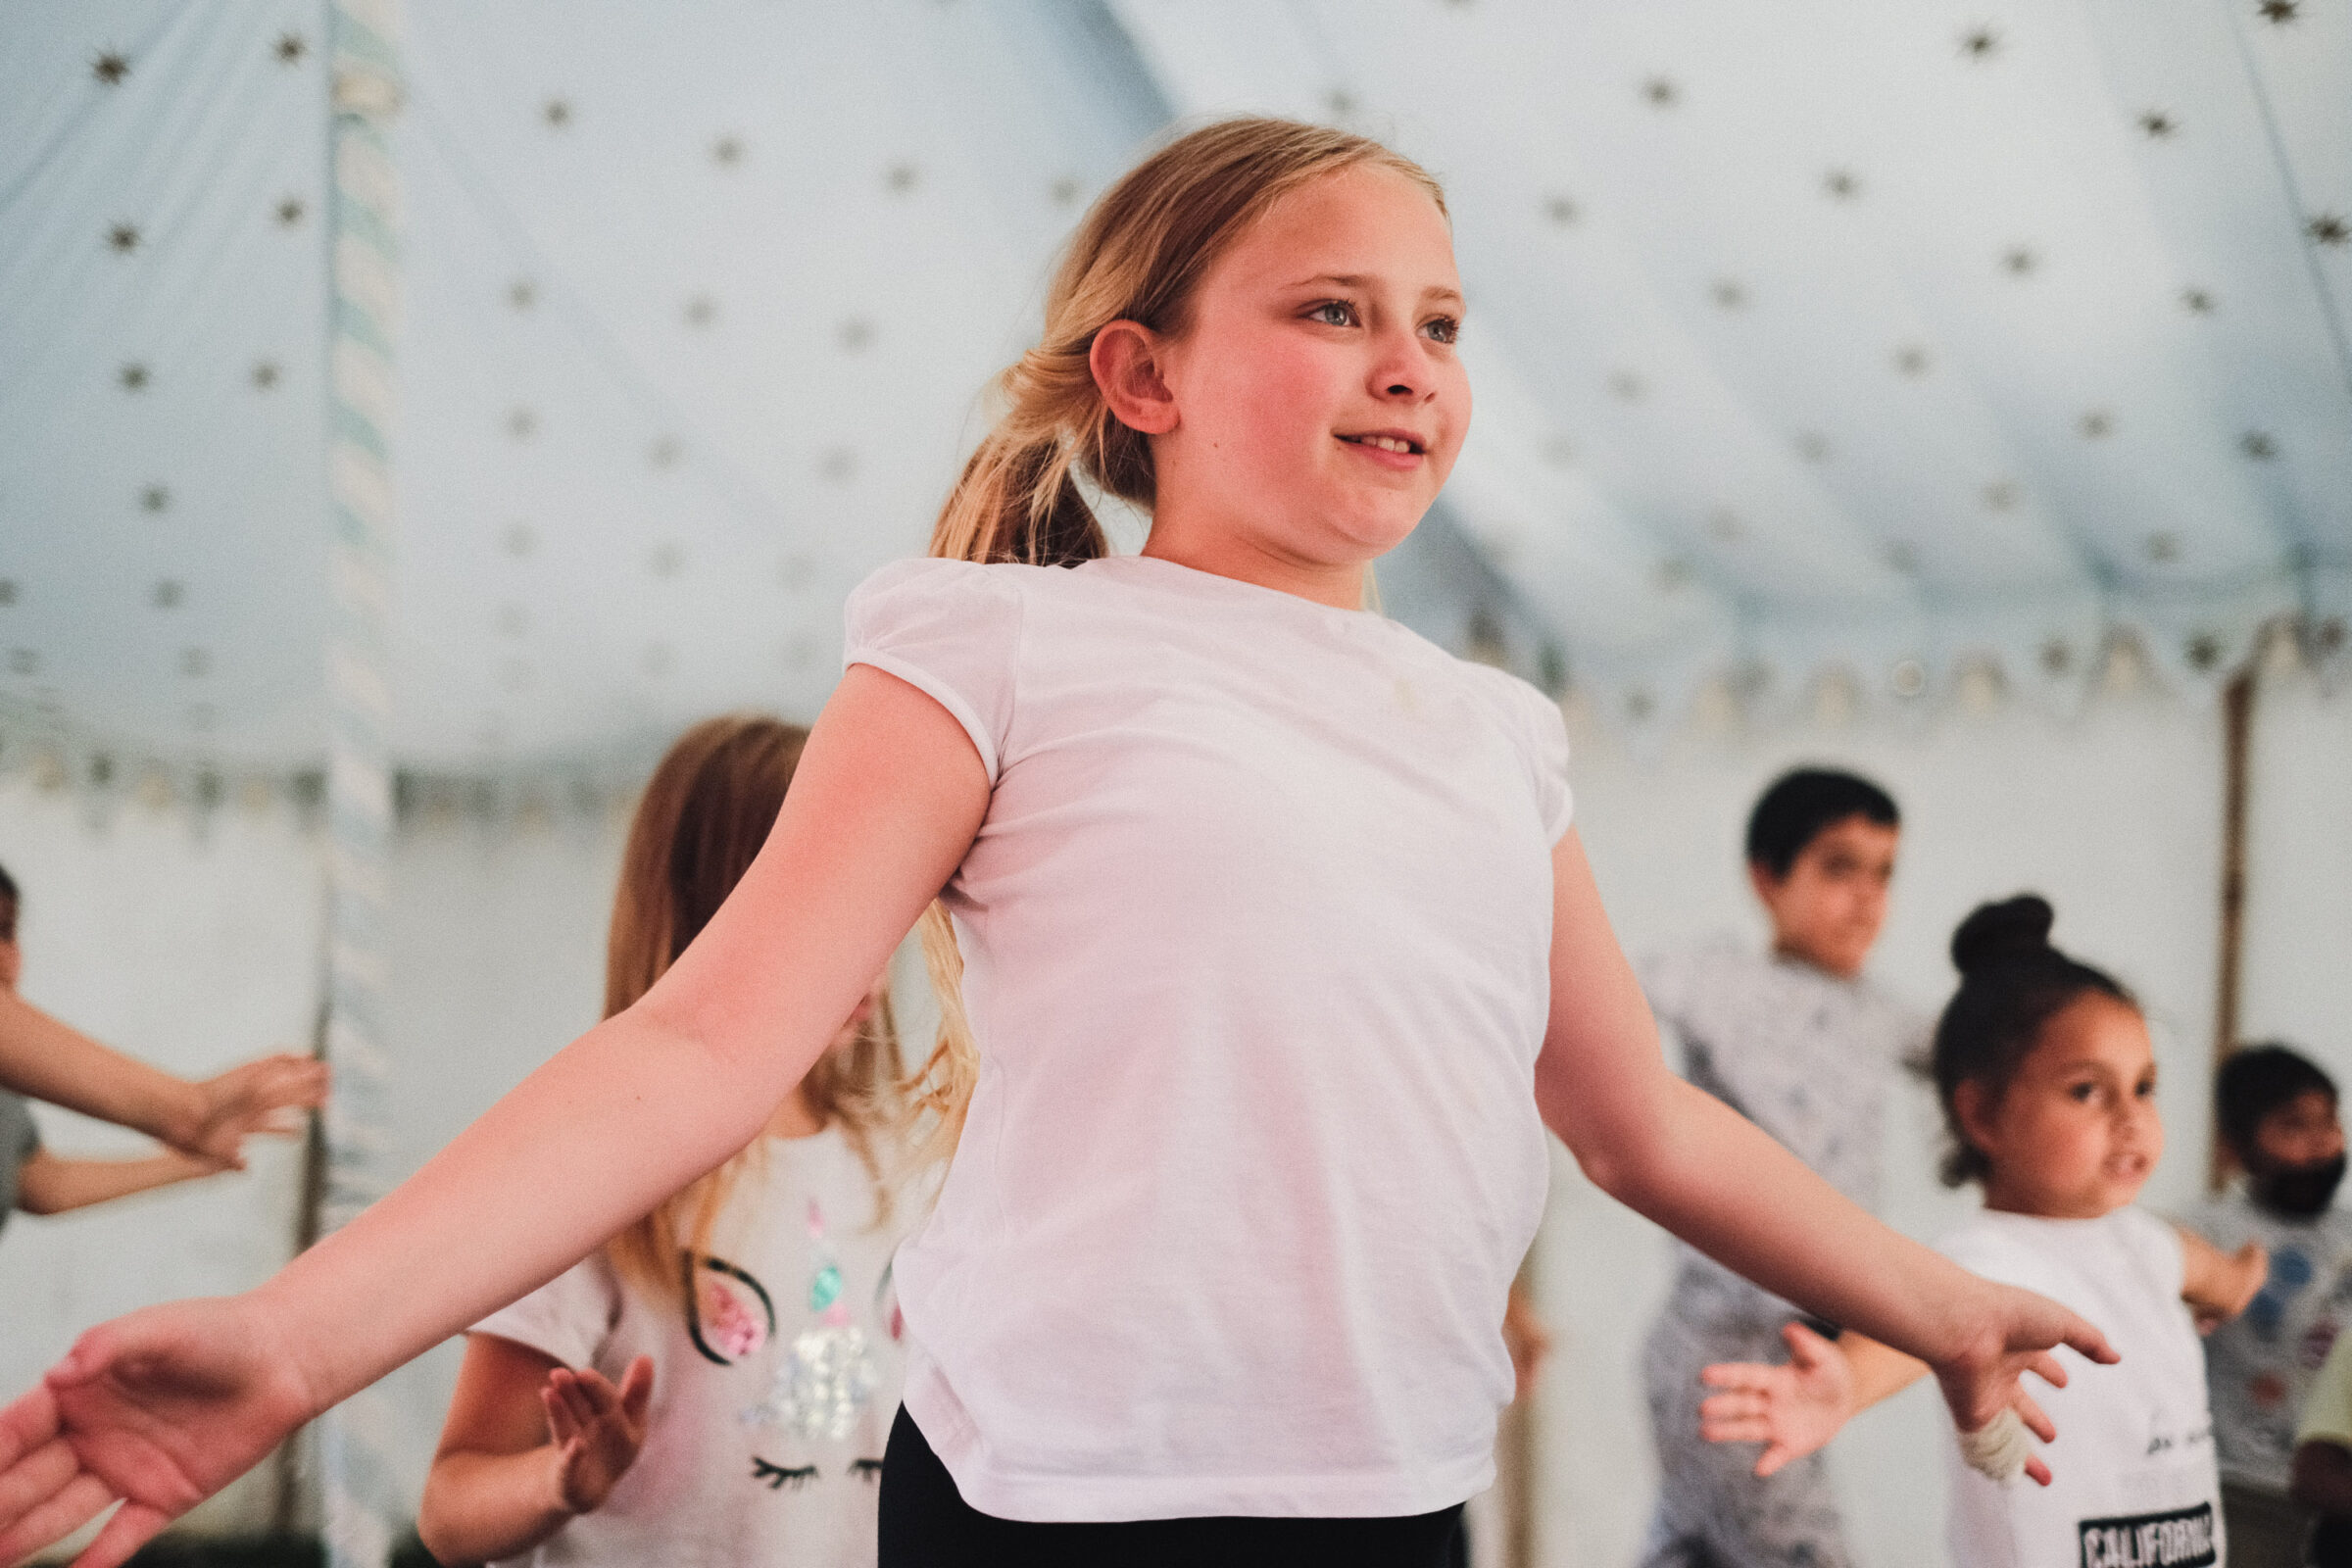 A young person performs a dance move as other young people dance in the background